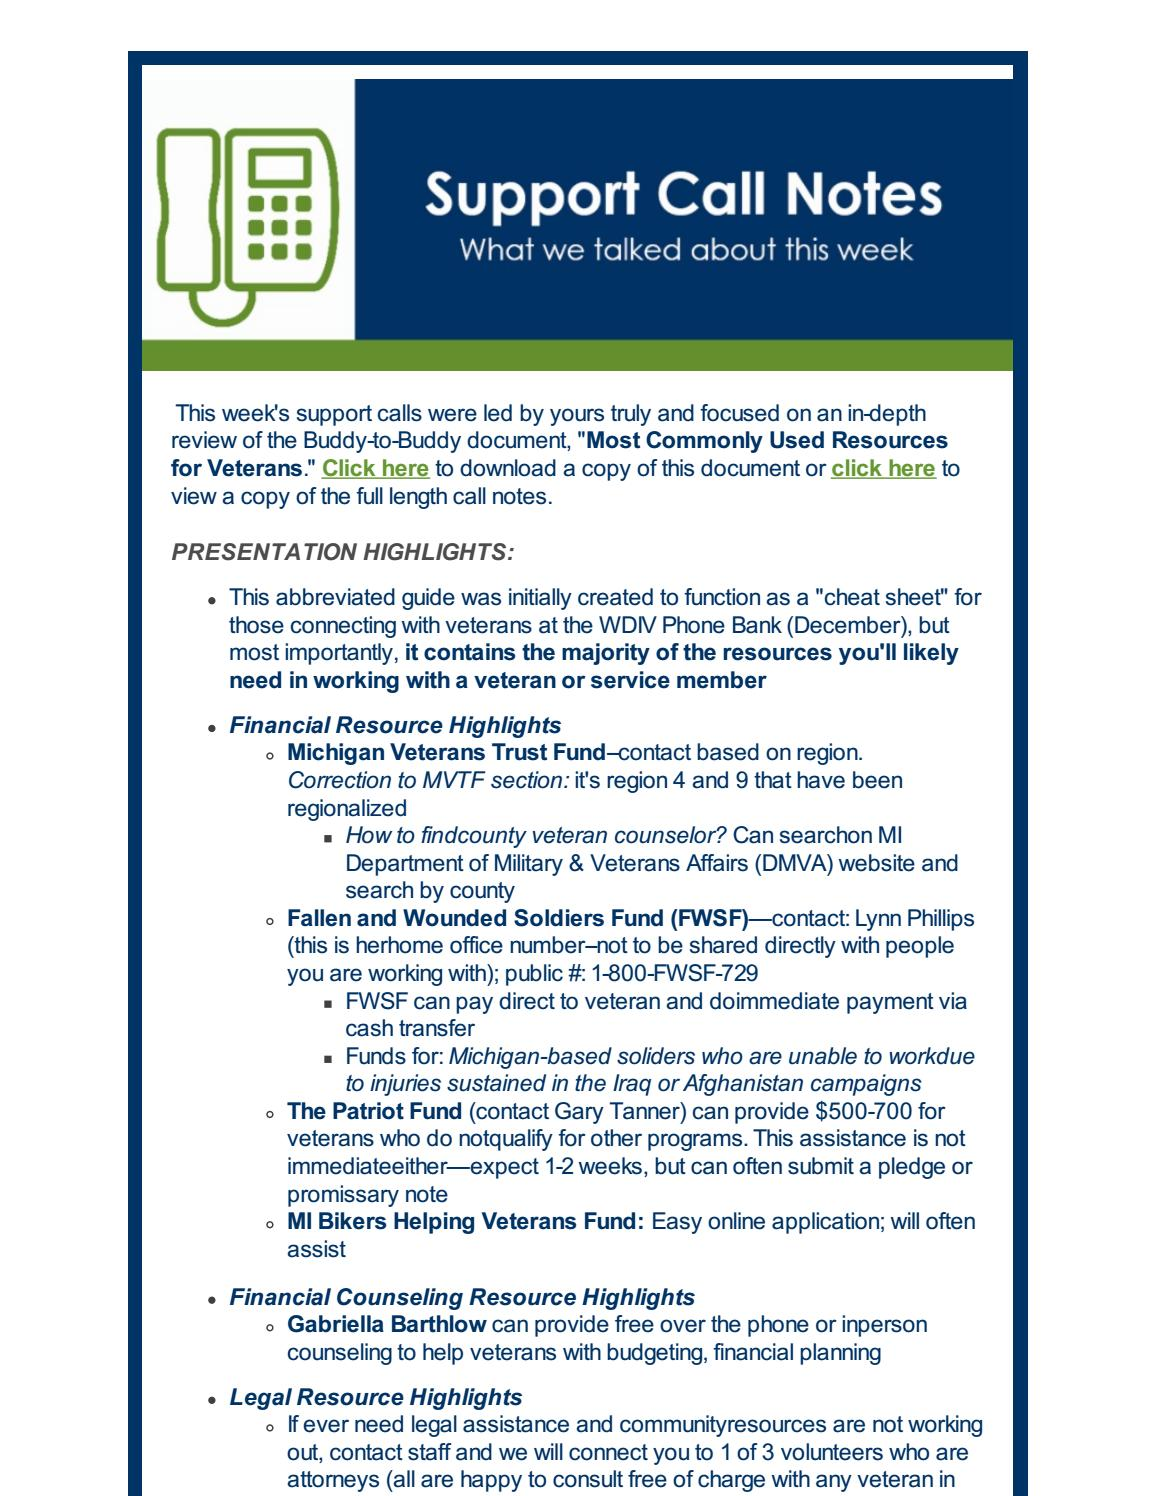 support call notes | most commonly used resources for veterans by